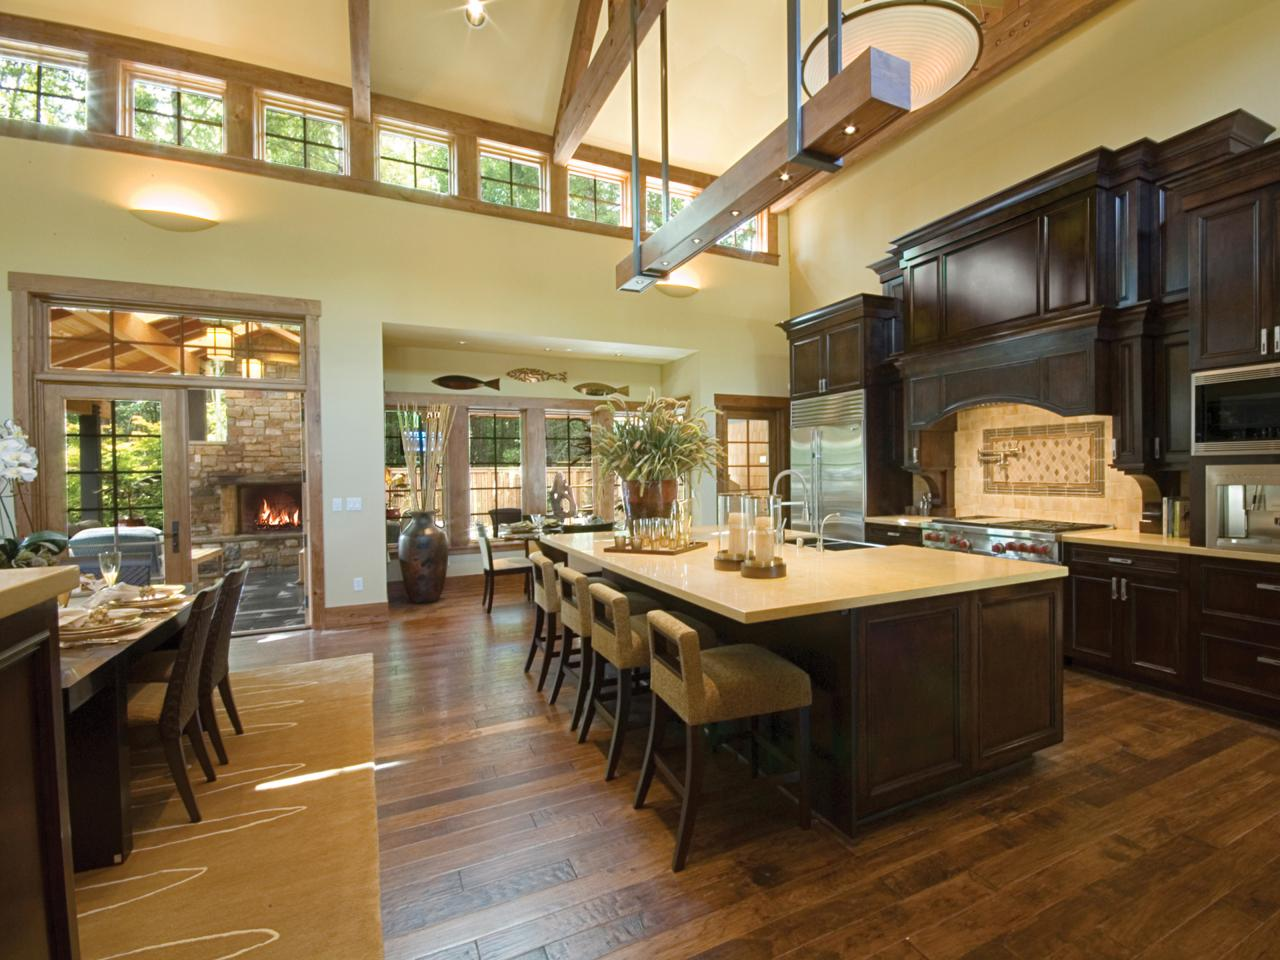 Kitchen Design With Wood Floors